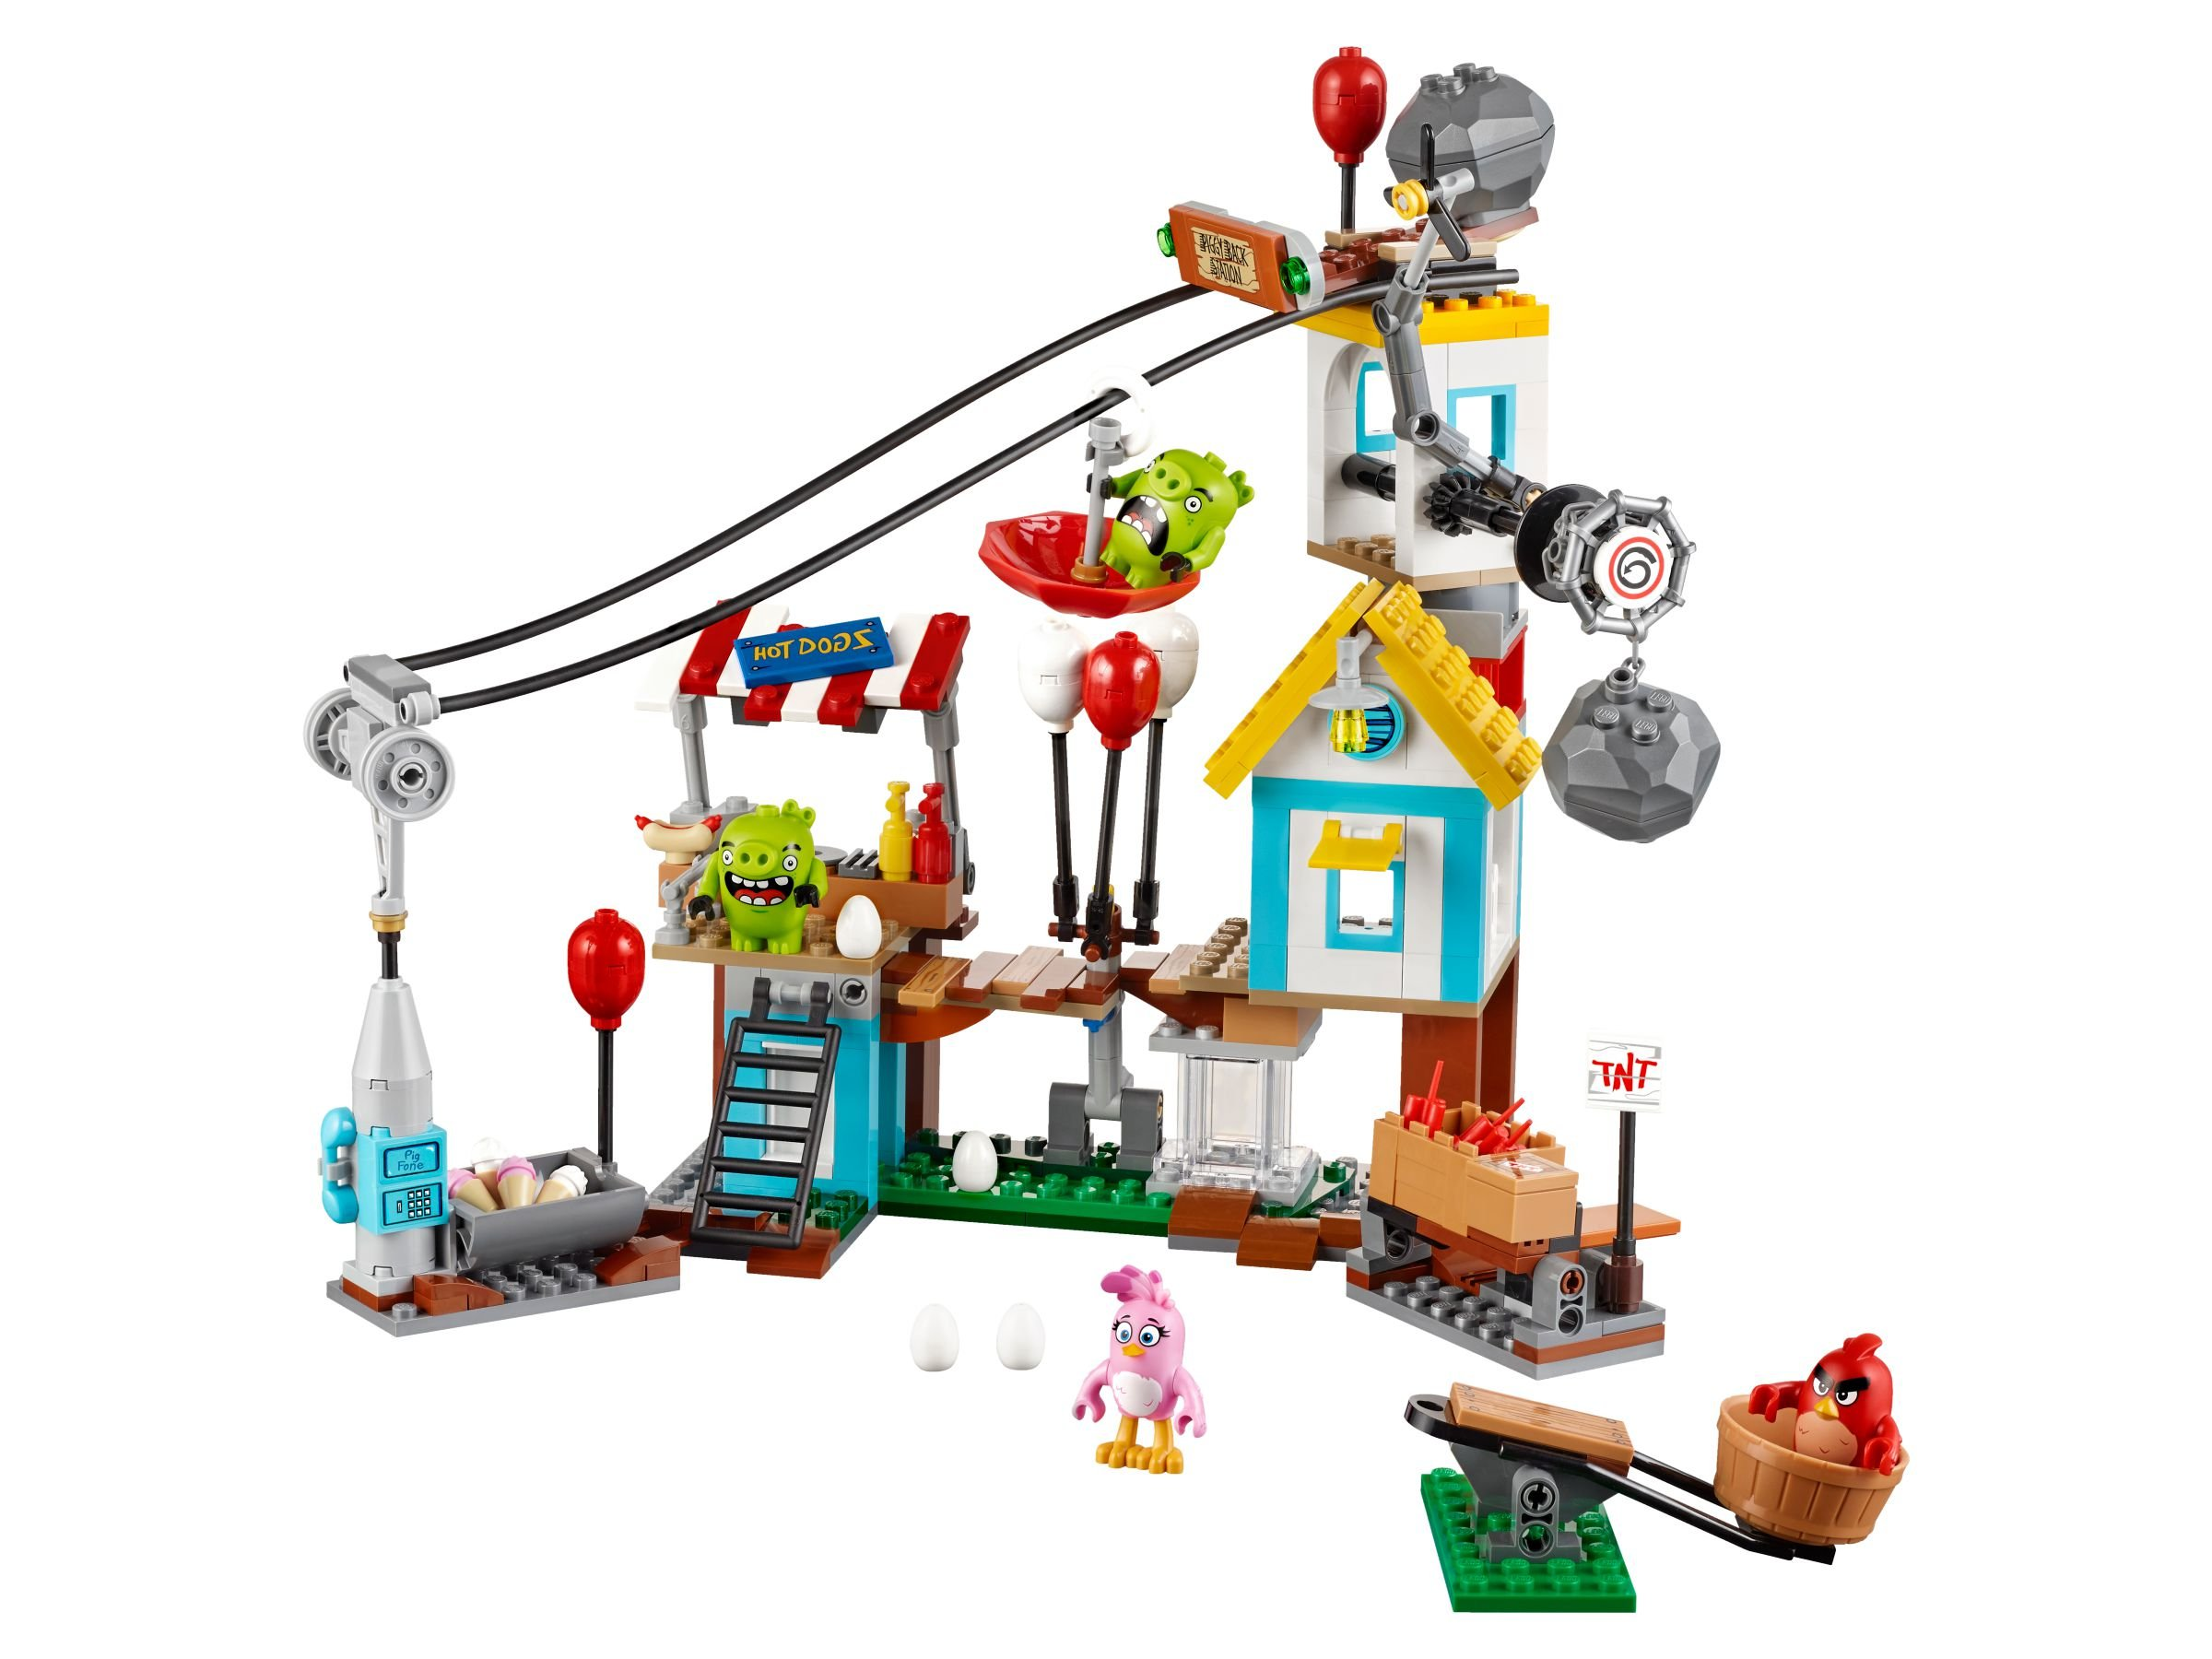 LEGO Angry Birds 75824 Pig City Teardown LEGO_75824.jpg